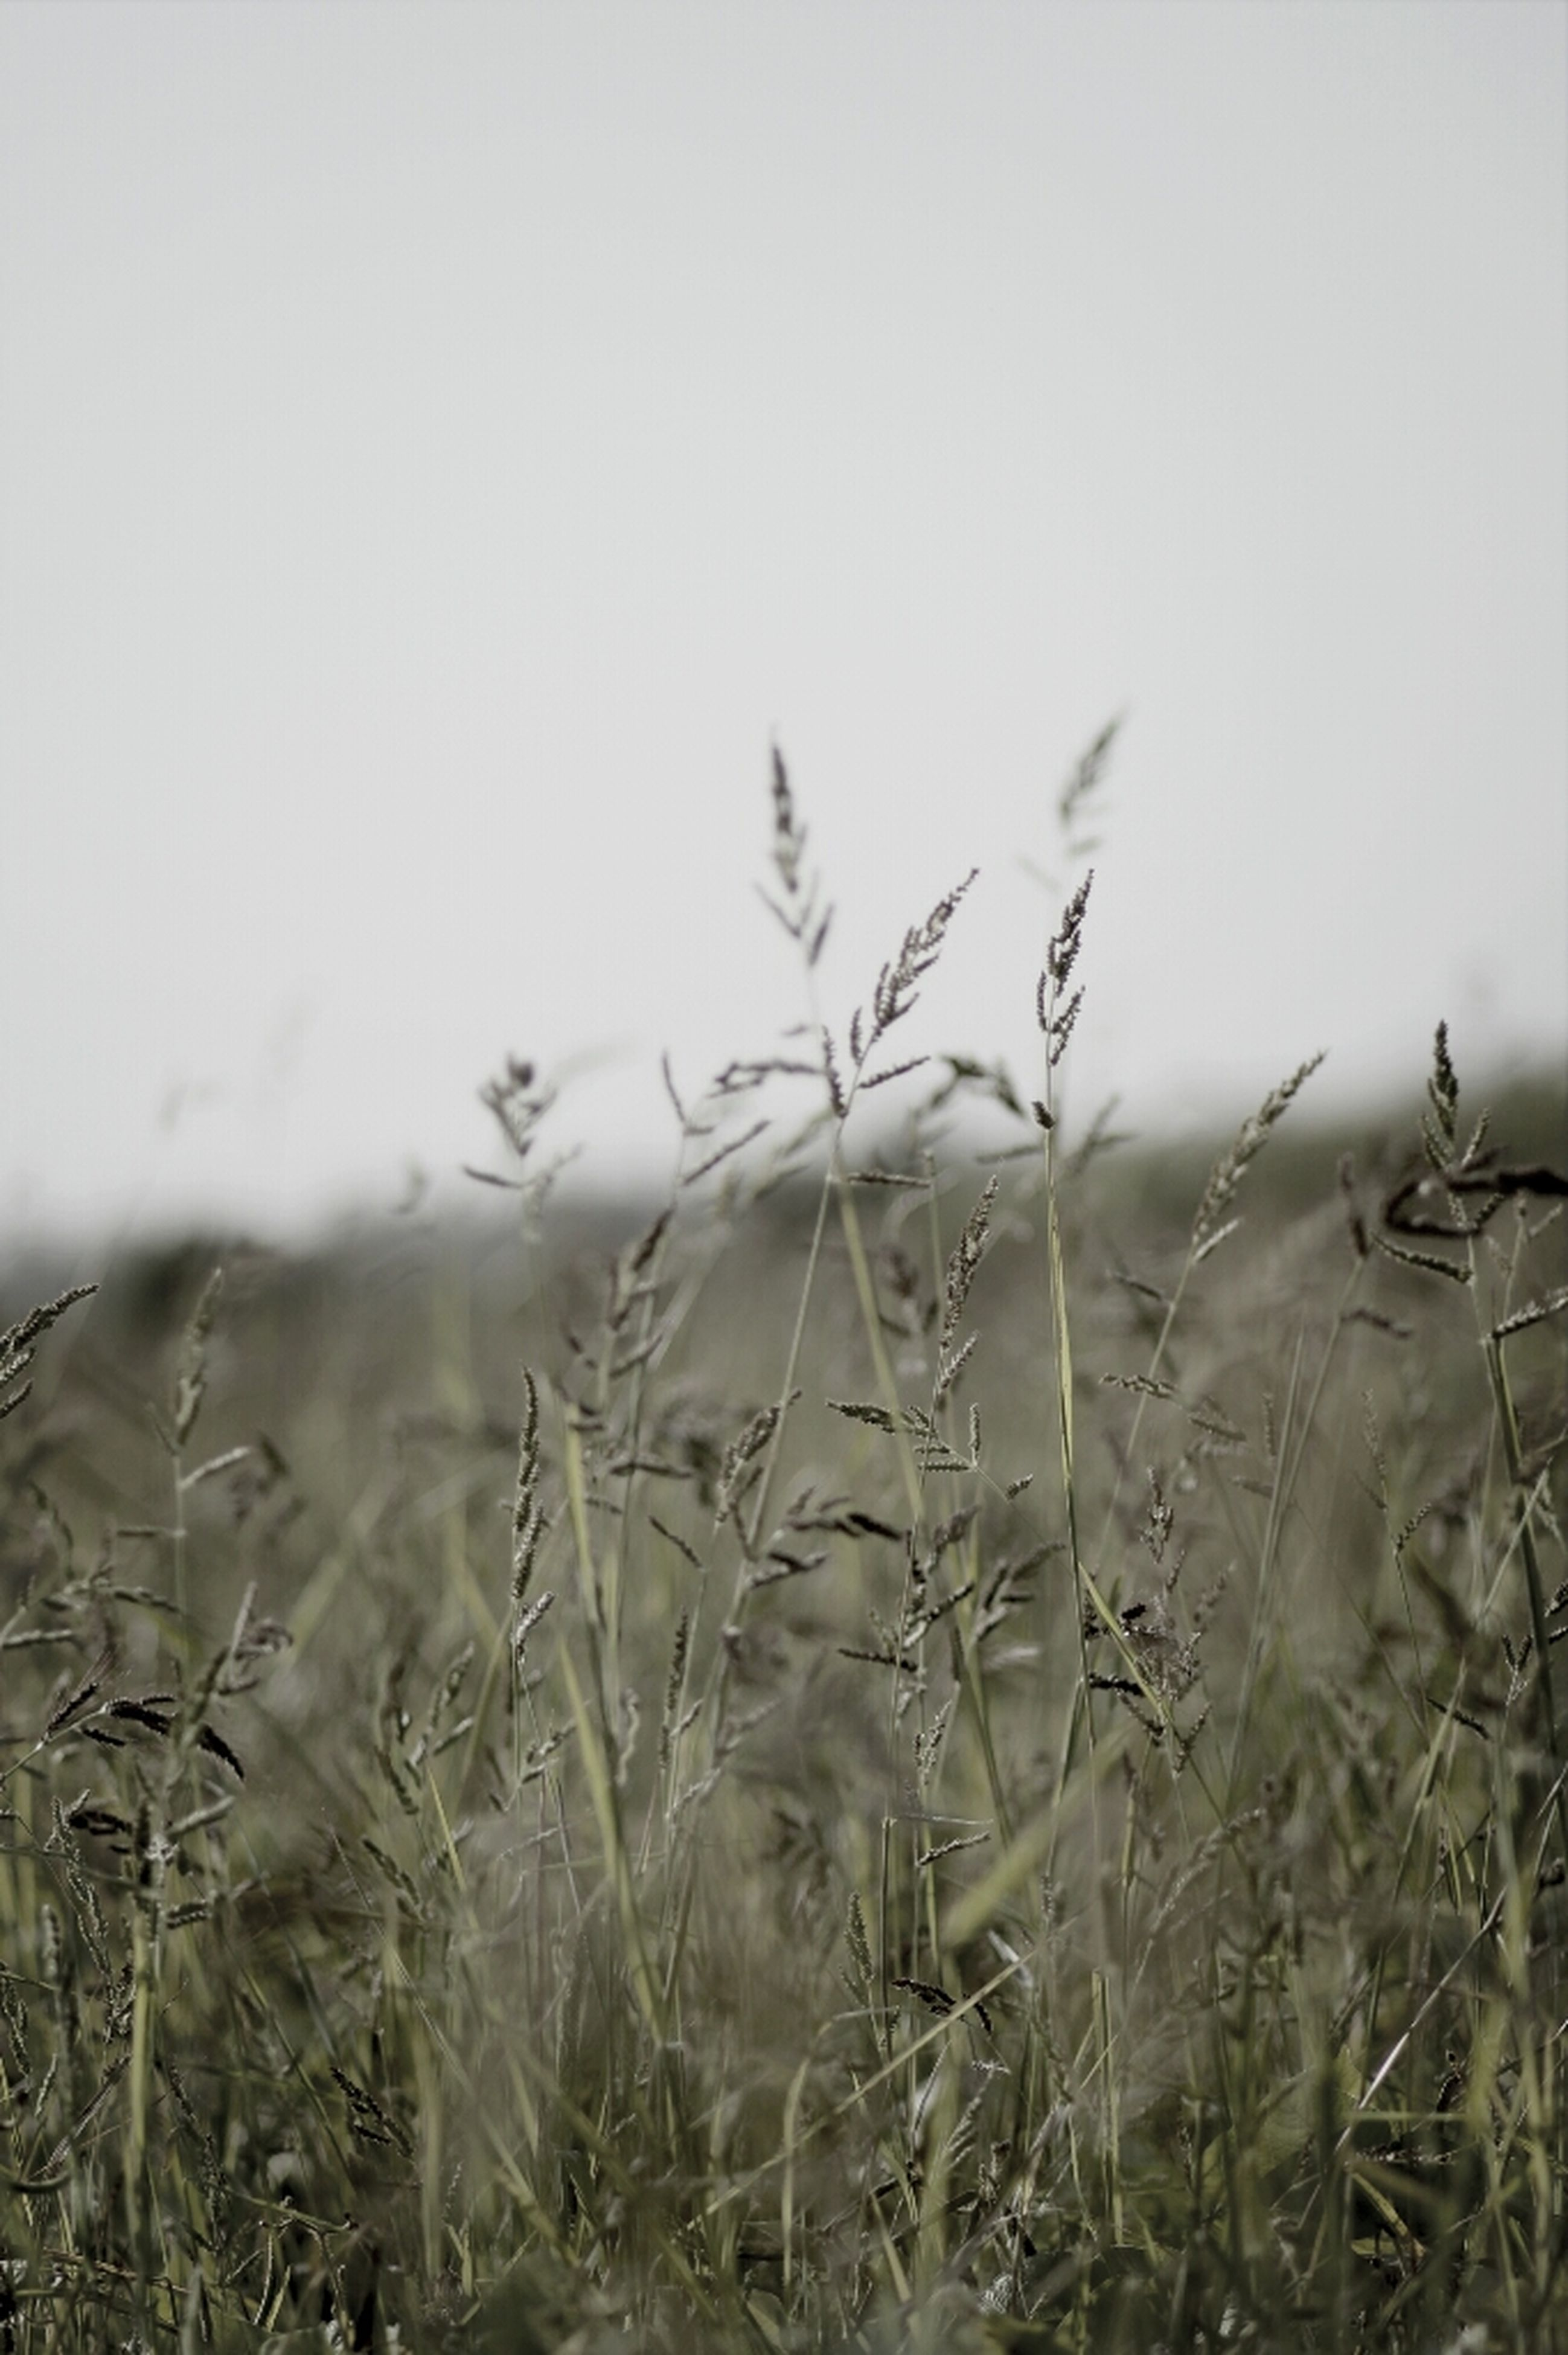 field, grass, plant, growth, nature, tranquility, fog, landscape, dry, tranquil scene, foggy, beauty in nature, sky, copy space, no people, day, outdoors, rural scene, weather